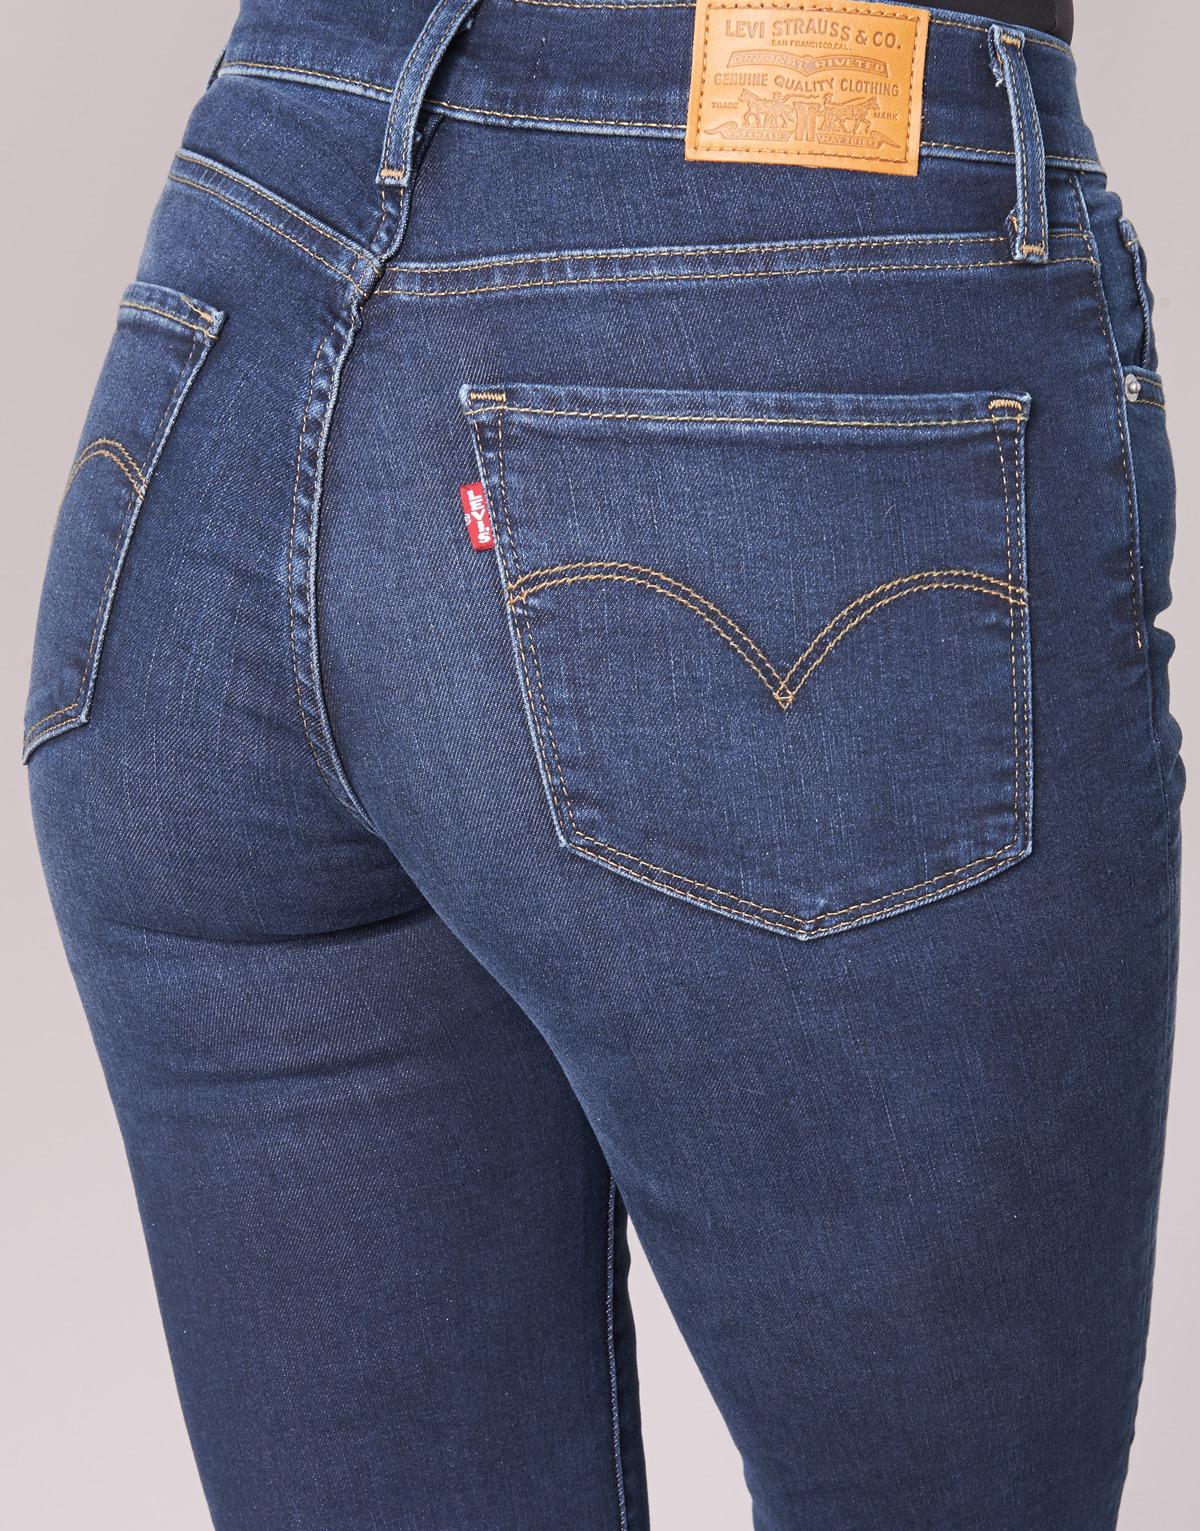 91bf9bea30fab Levi s - Blue 724 High Rise Straight Jeans - Lyst. View fullscreen